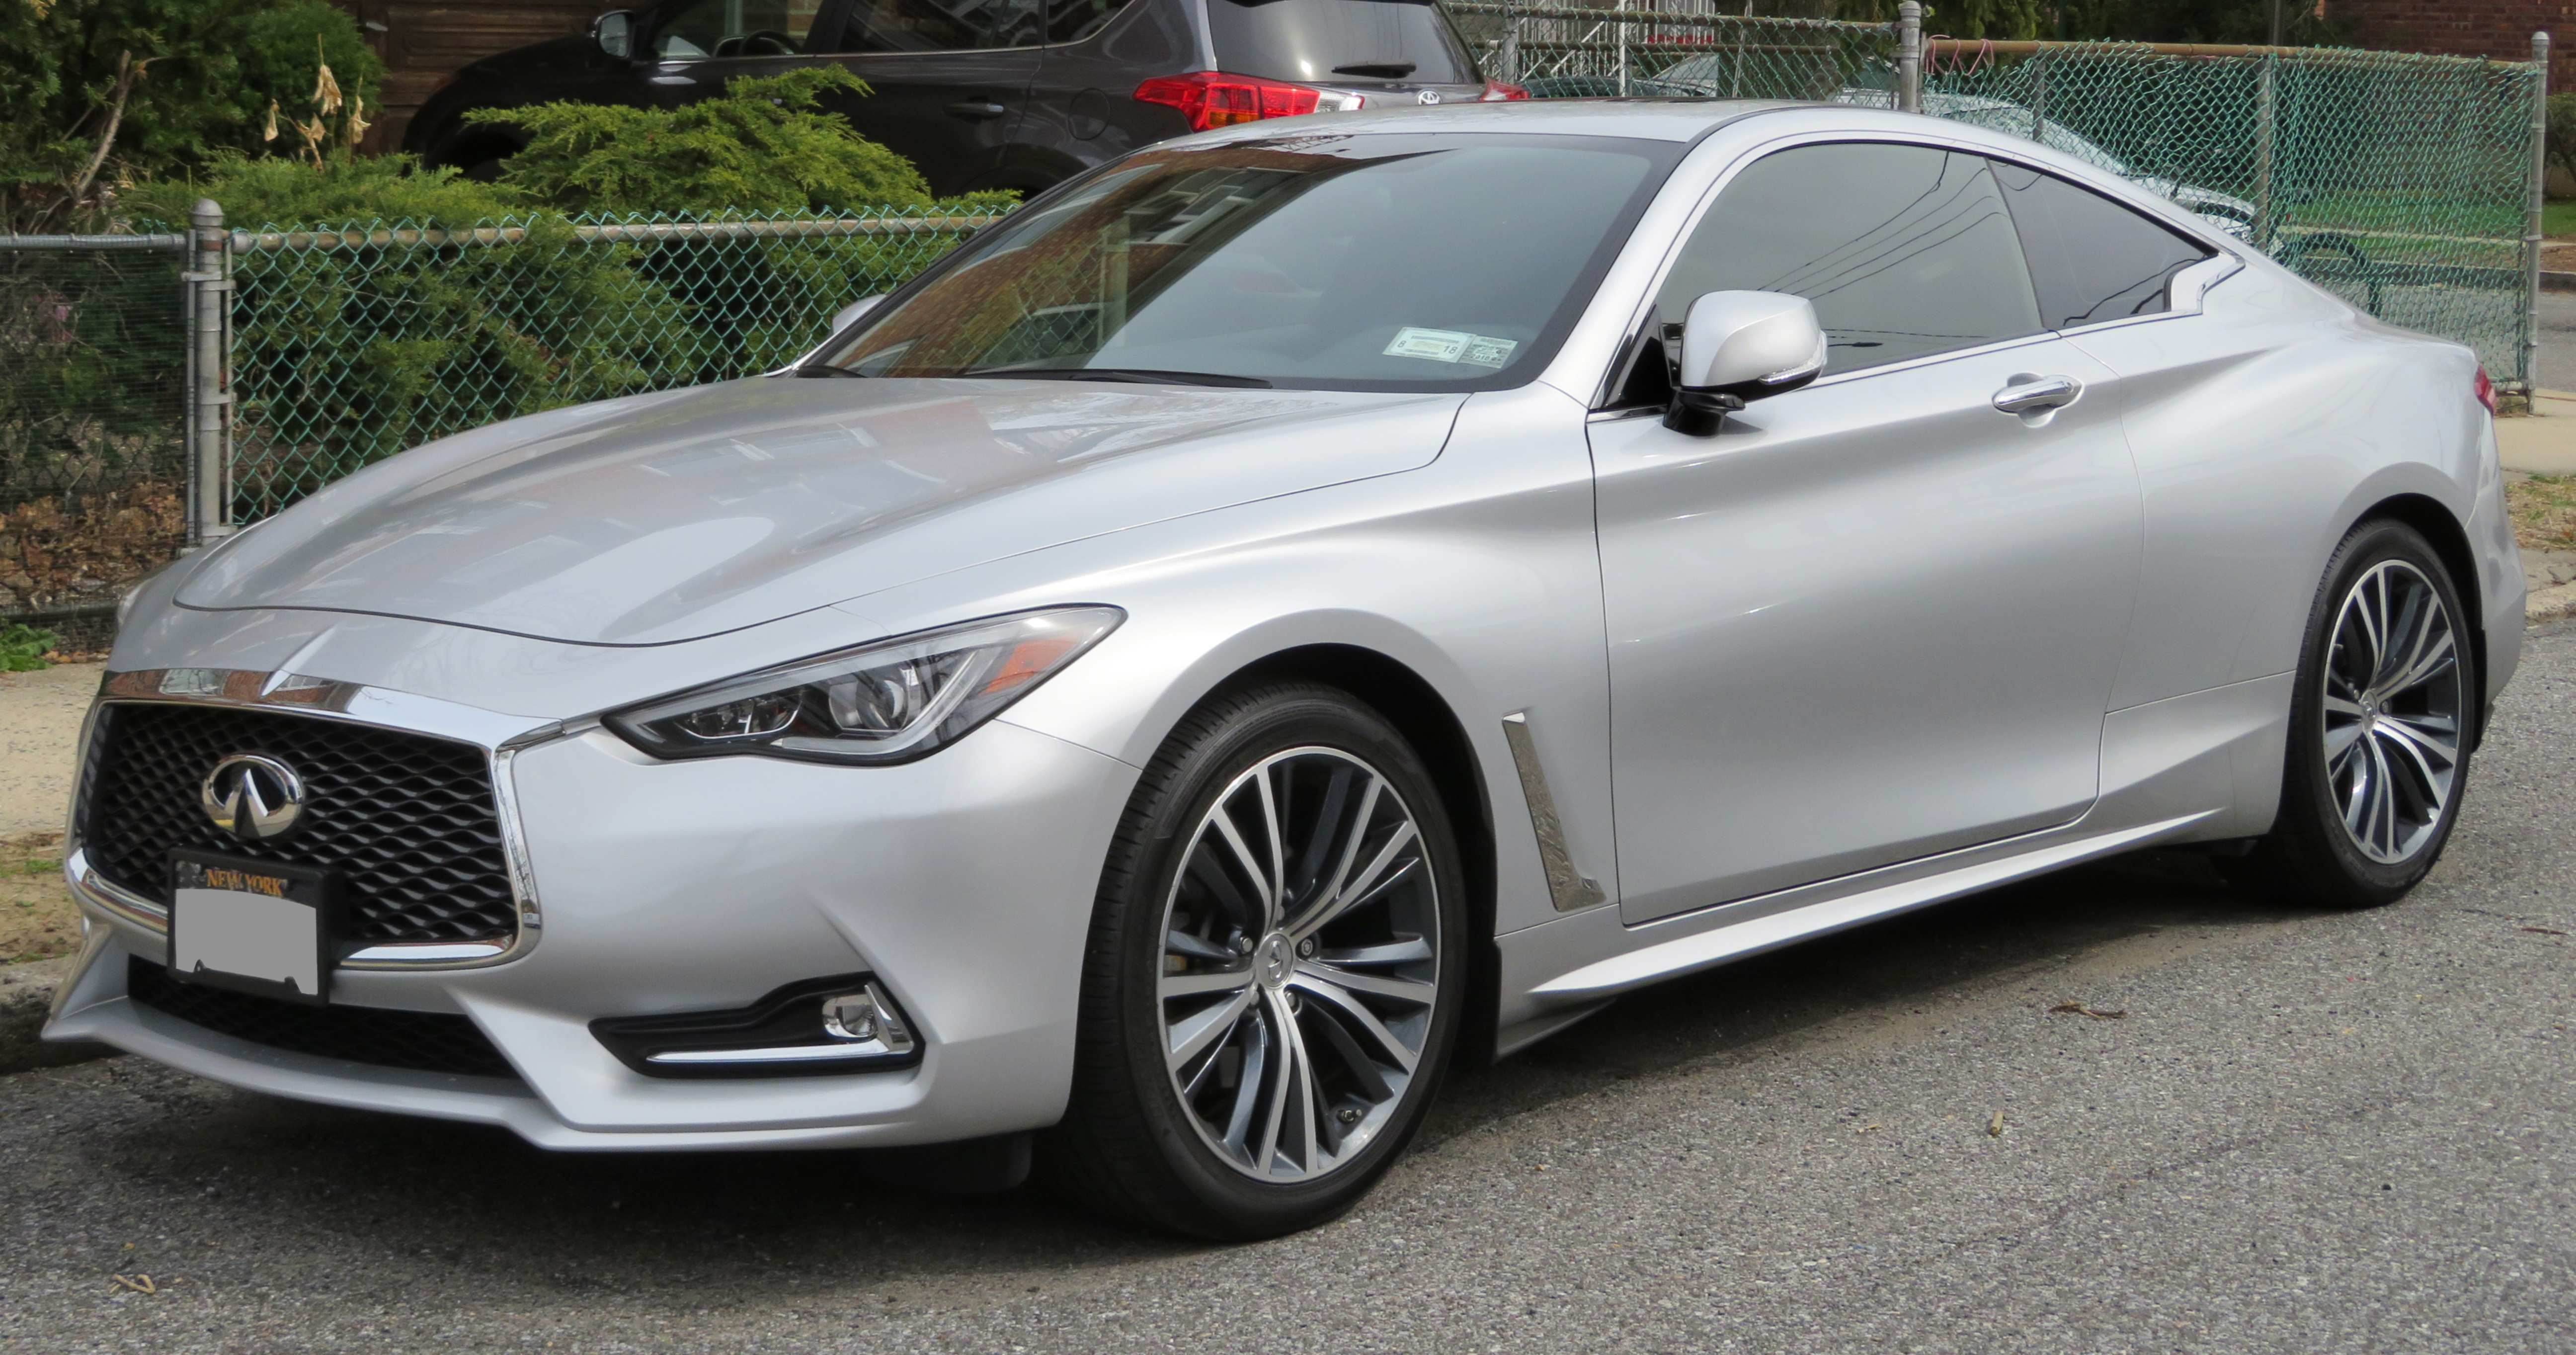 13 The Best 2020 Infiniti Q60 Coupe Ipl Style